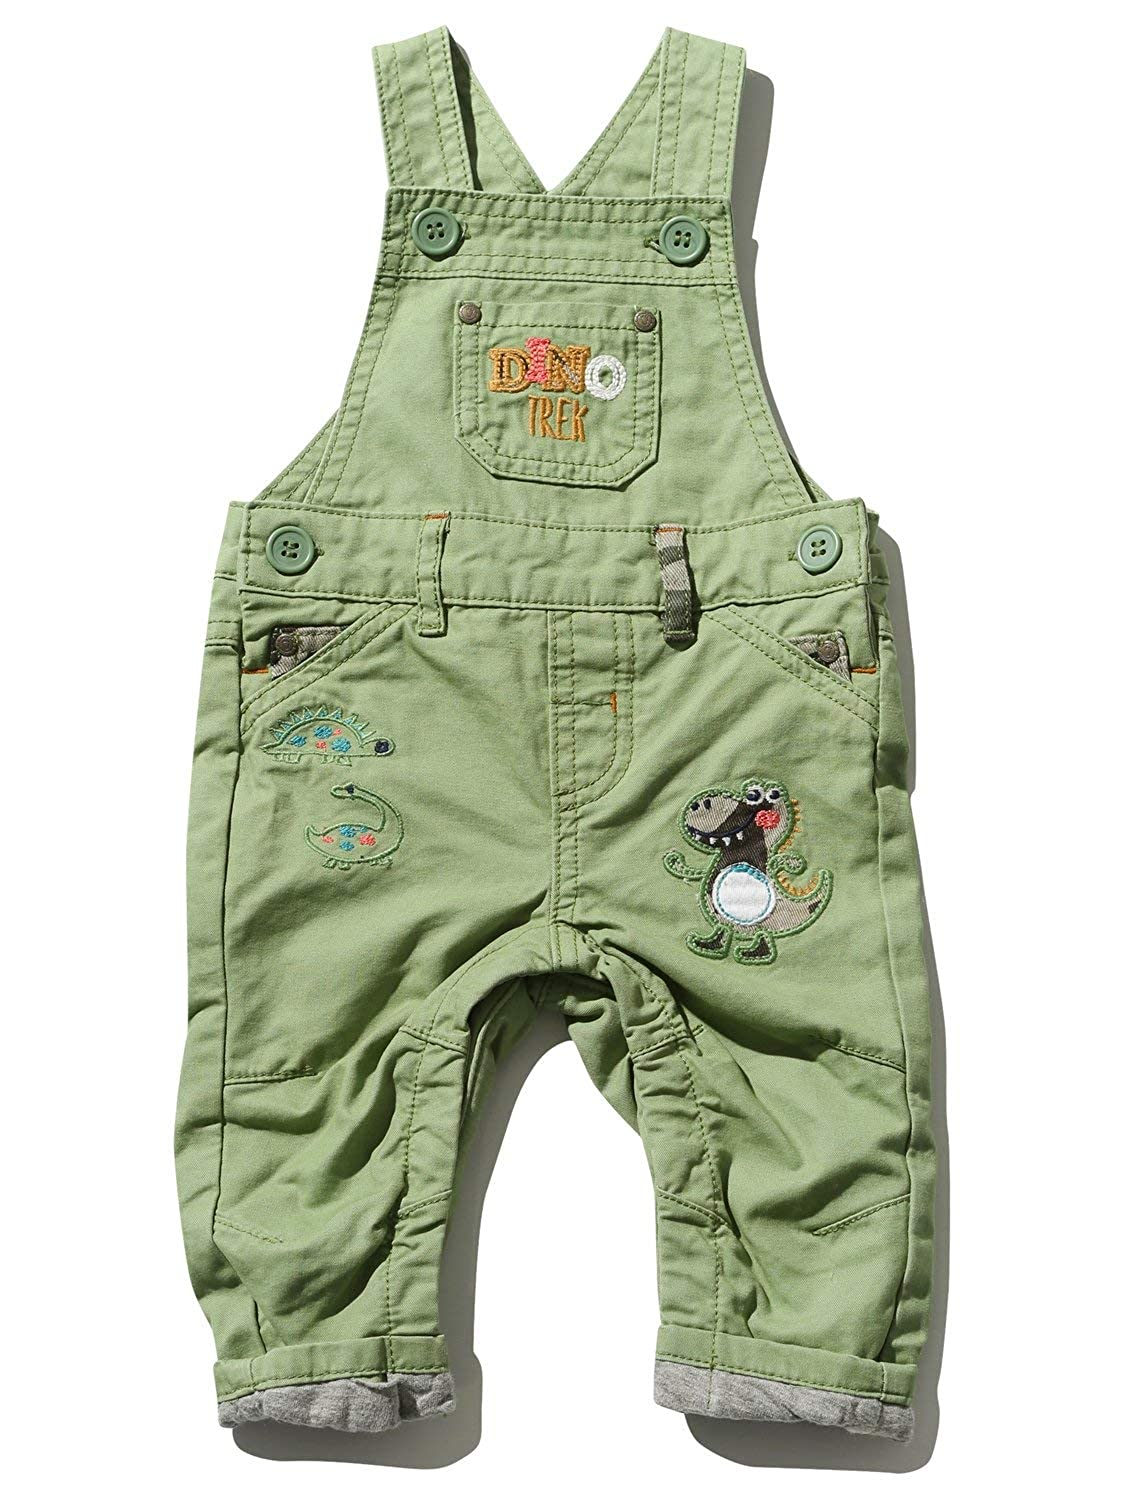 M&Co Baby Boy Cotton Khaki Dinosaur Applique Button Fastening Pockets Dungarees